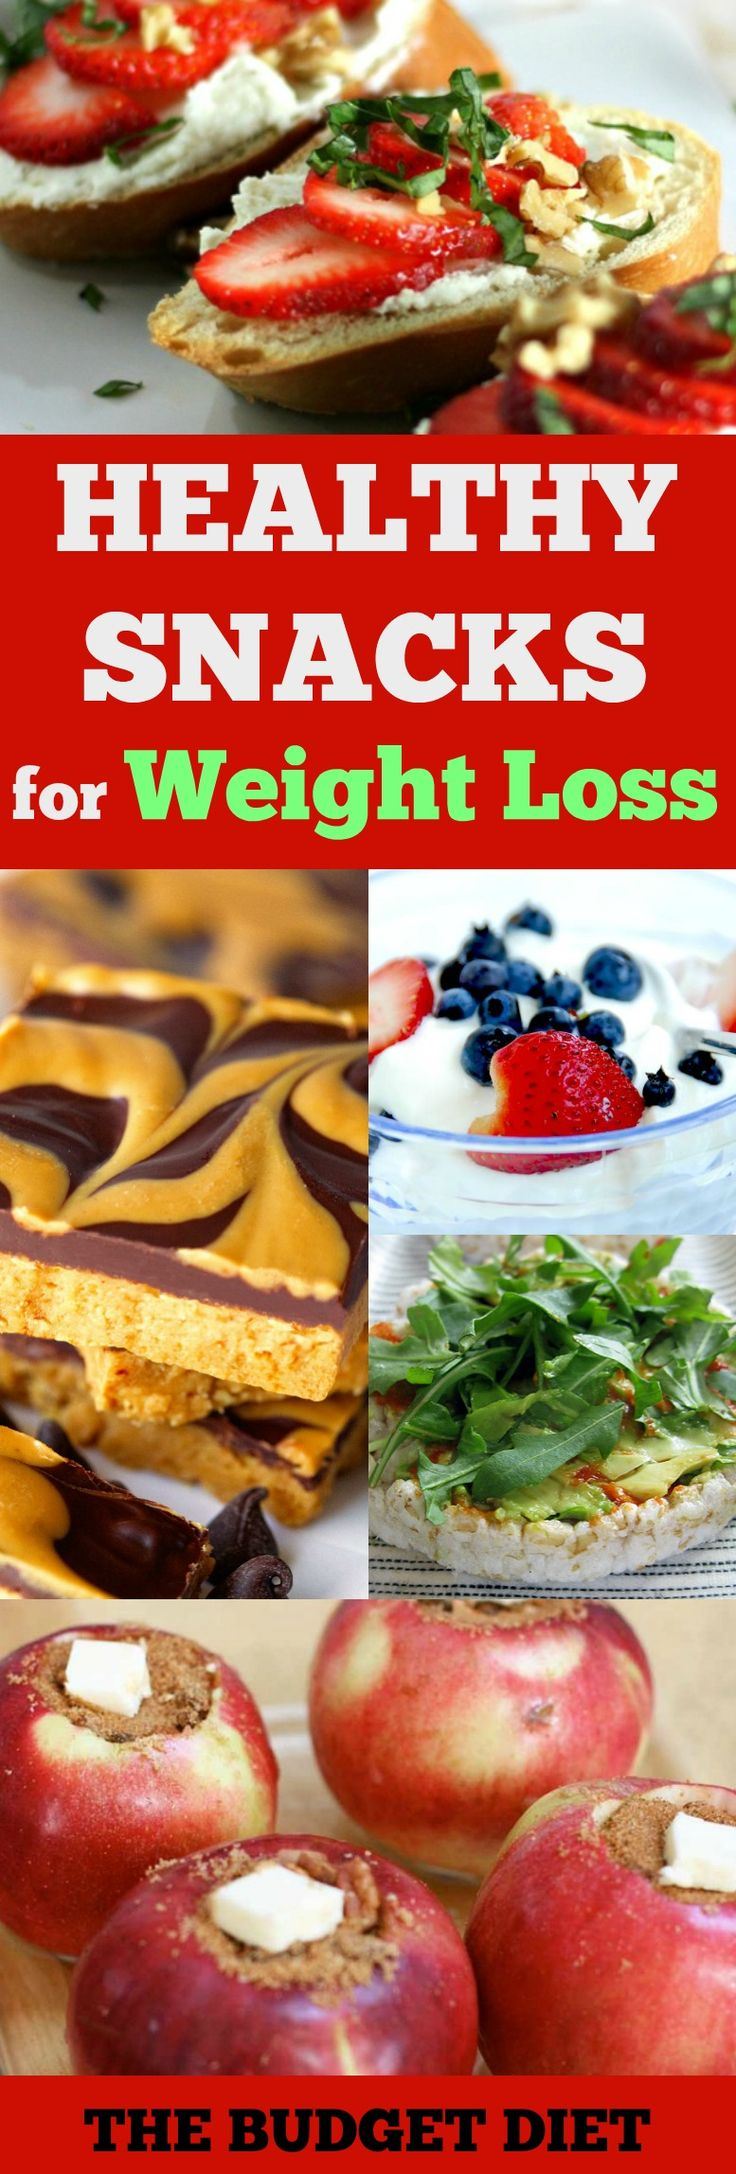 16 Best Healthy Snacks for Weight Loss | On A Budget Yummy & Easy Recipes Perfect for Picky Eaters!